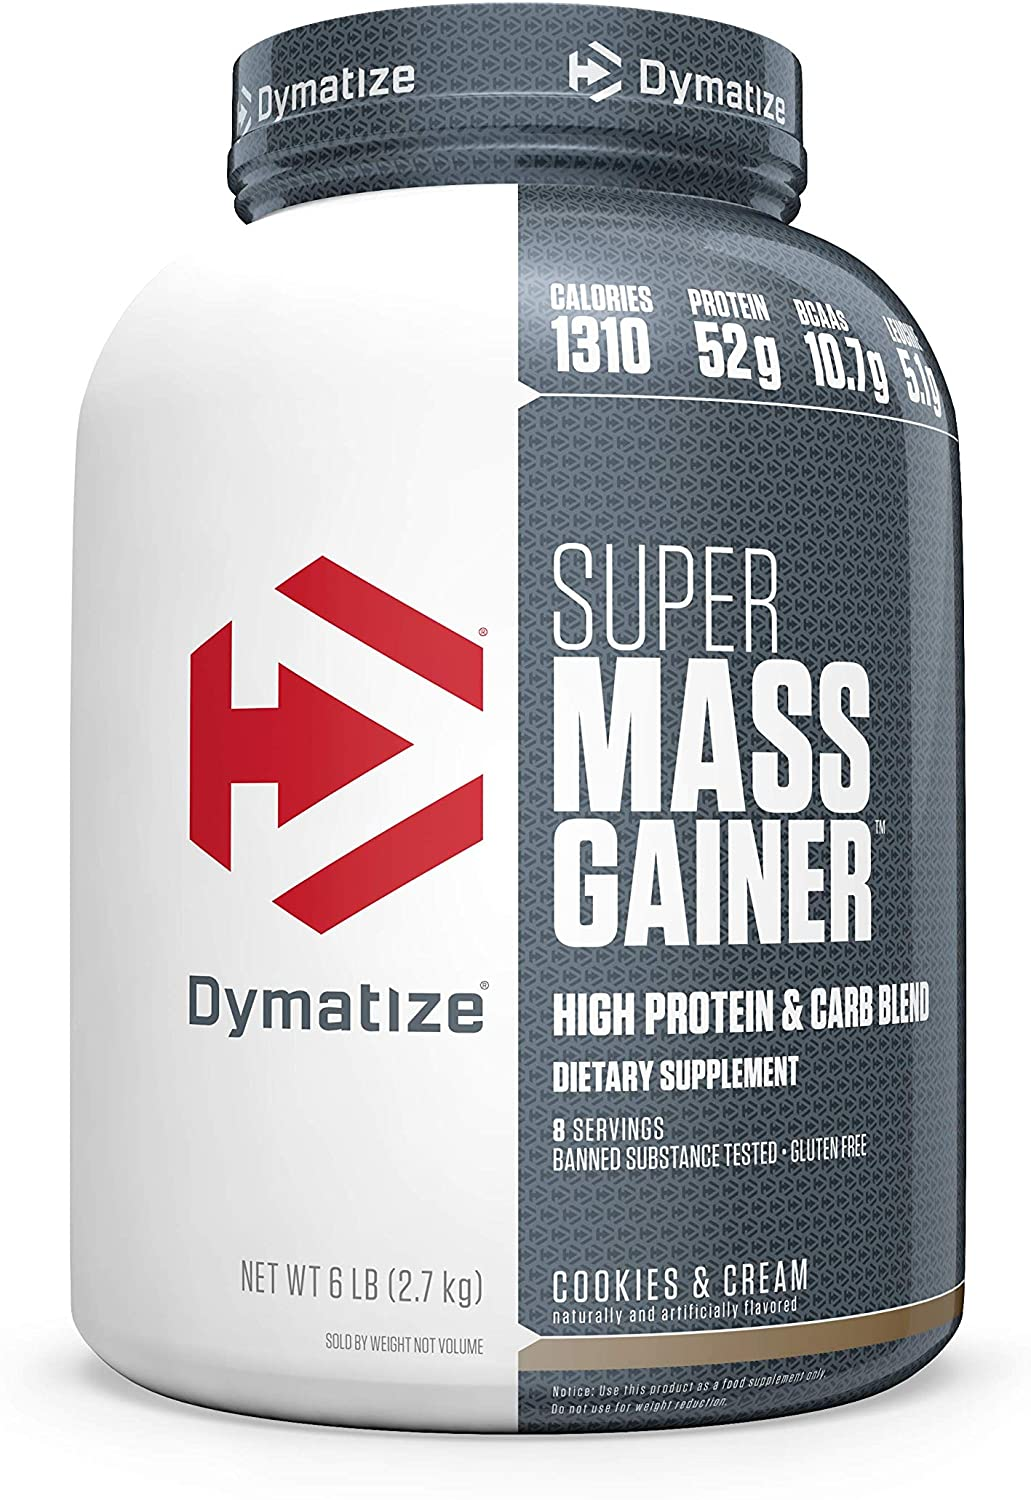 Dymatize Super Mass Gainer Protein Powder, 1310 Calories & 52g Protein, Gain Strength & Size Quickly, 10.7g BCAAs, Mixes Easily, Tastes Delicious, Cookies & Cream, 6 lbs: Health & Personal Care